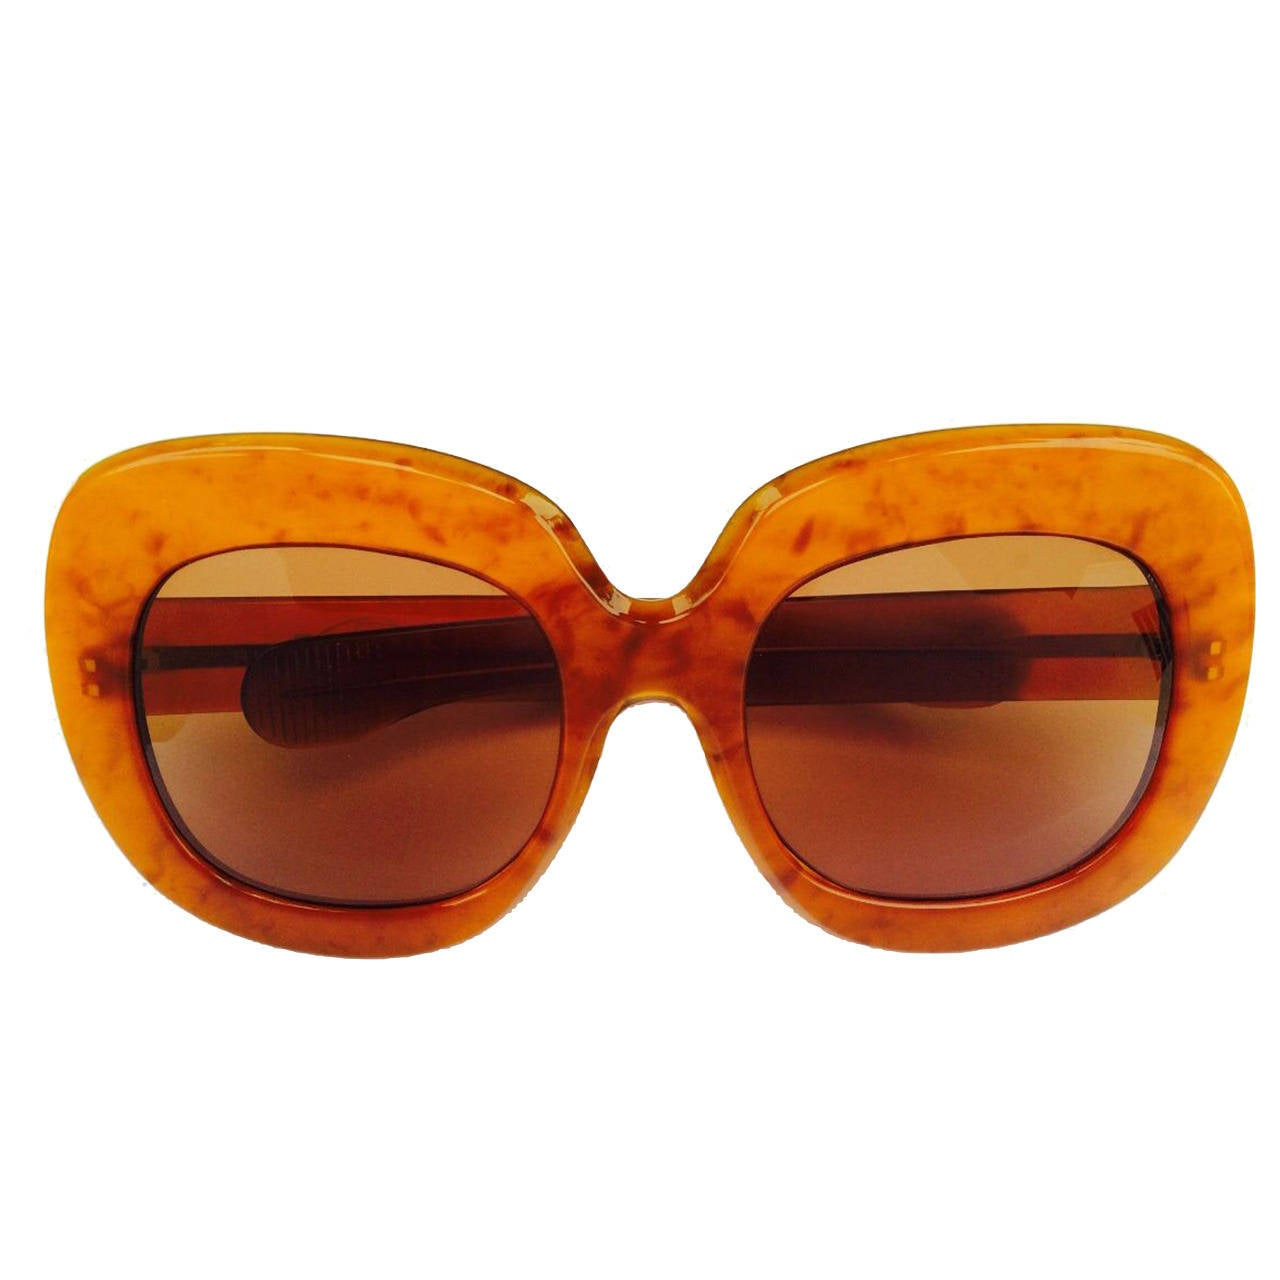 Oversize Lucite Sunglasses 1970s at 1stdibs